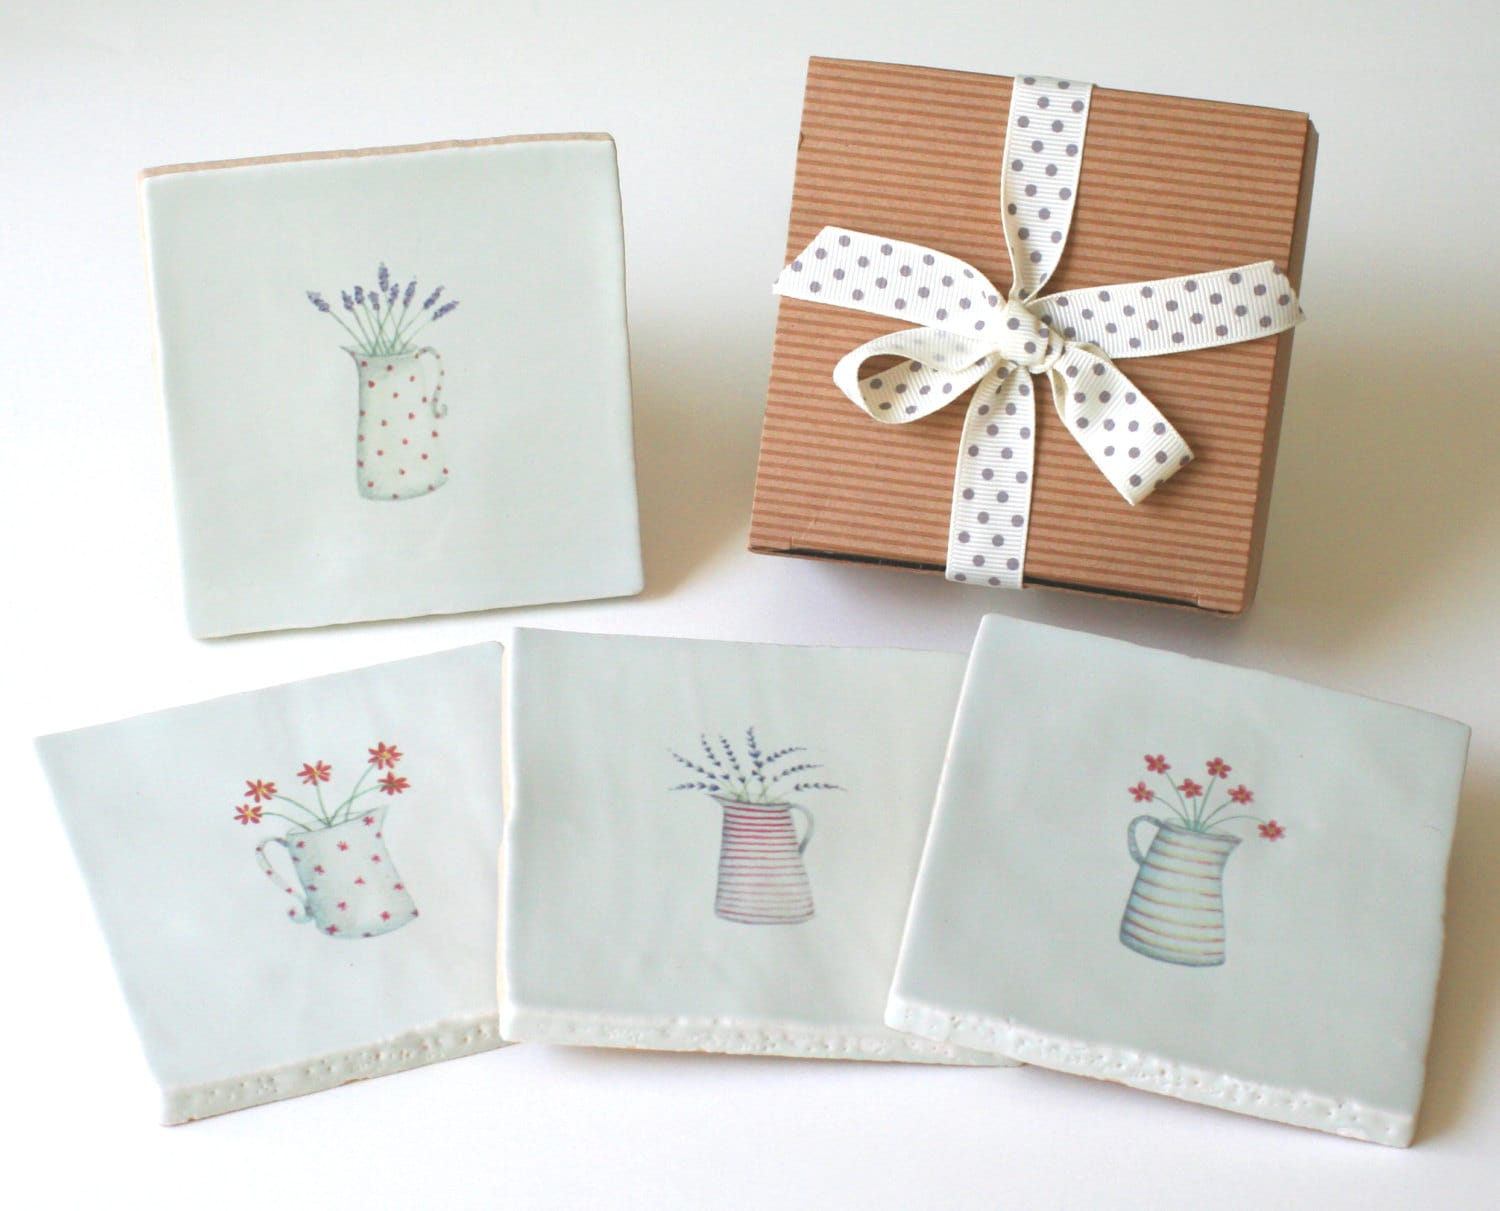 Housewarming Gift For Sister Handmade Ceramic Coasters With Gift Box Floral Drinks